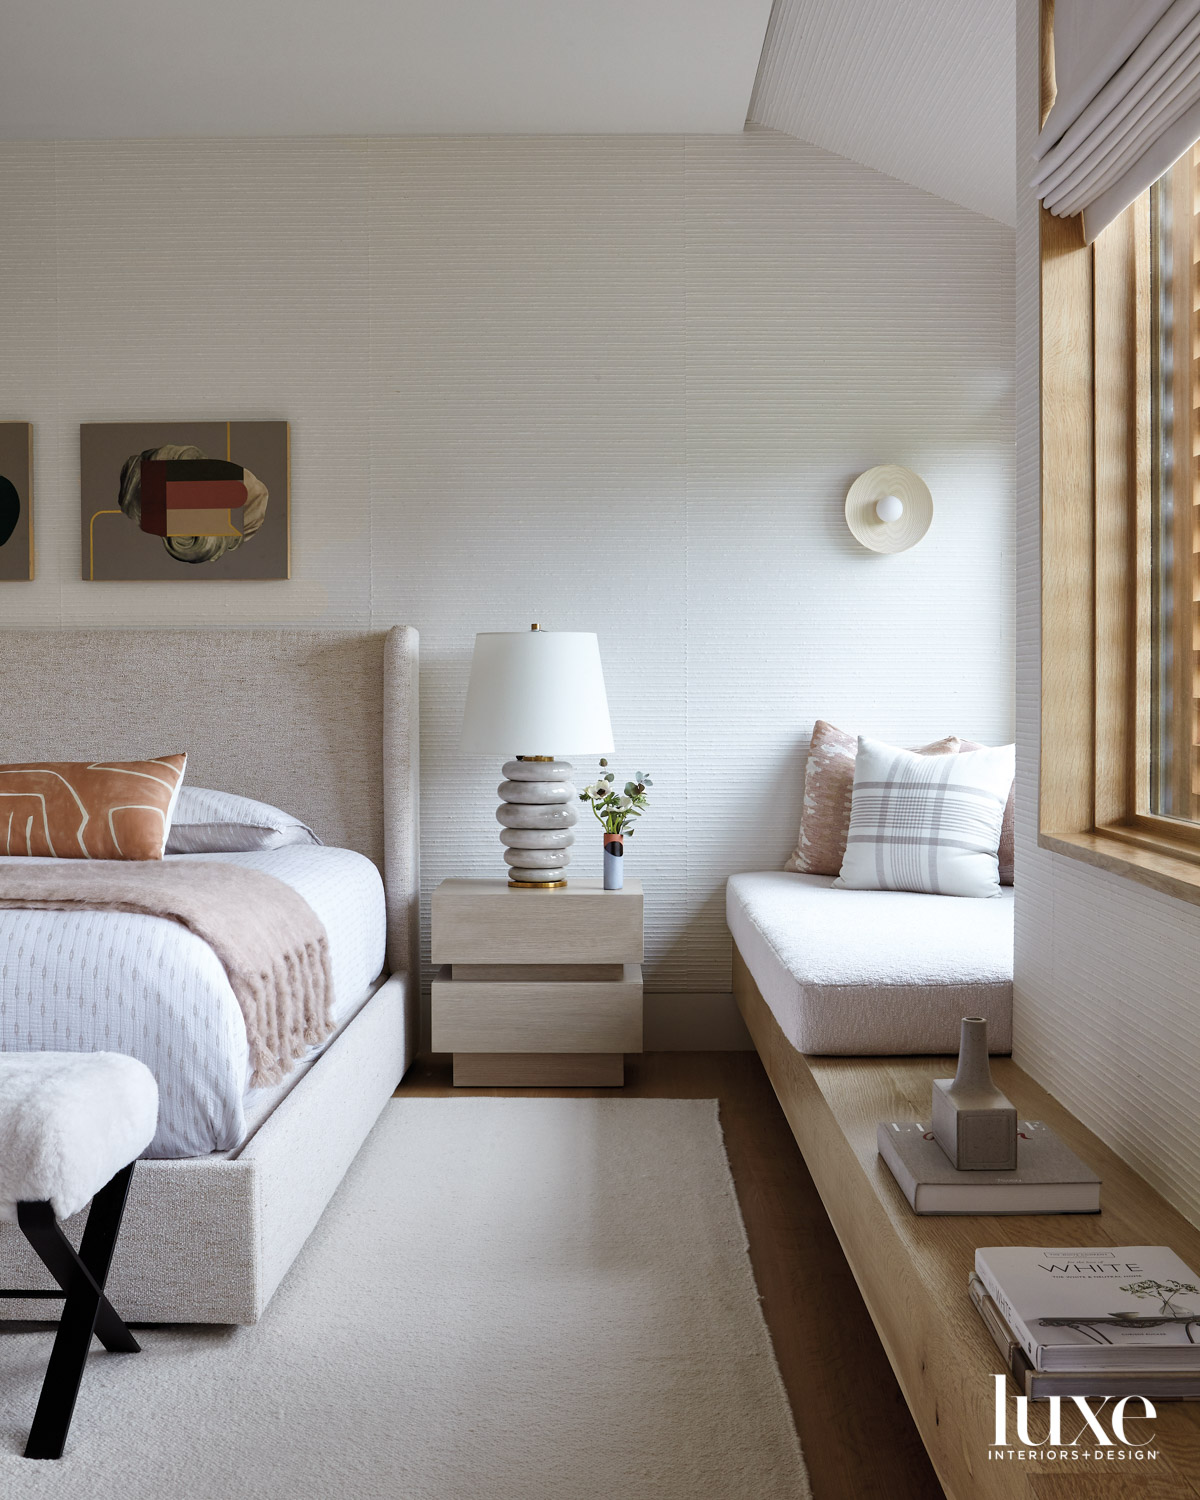 Main bedroom with neutral interiors